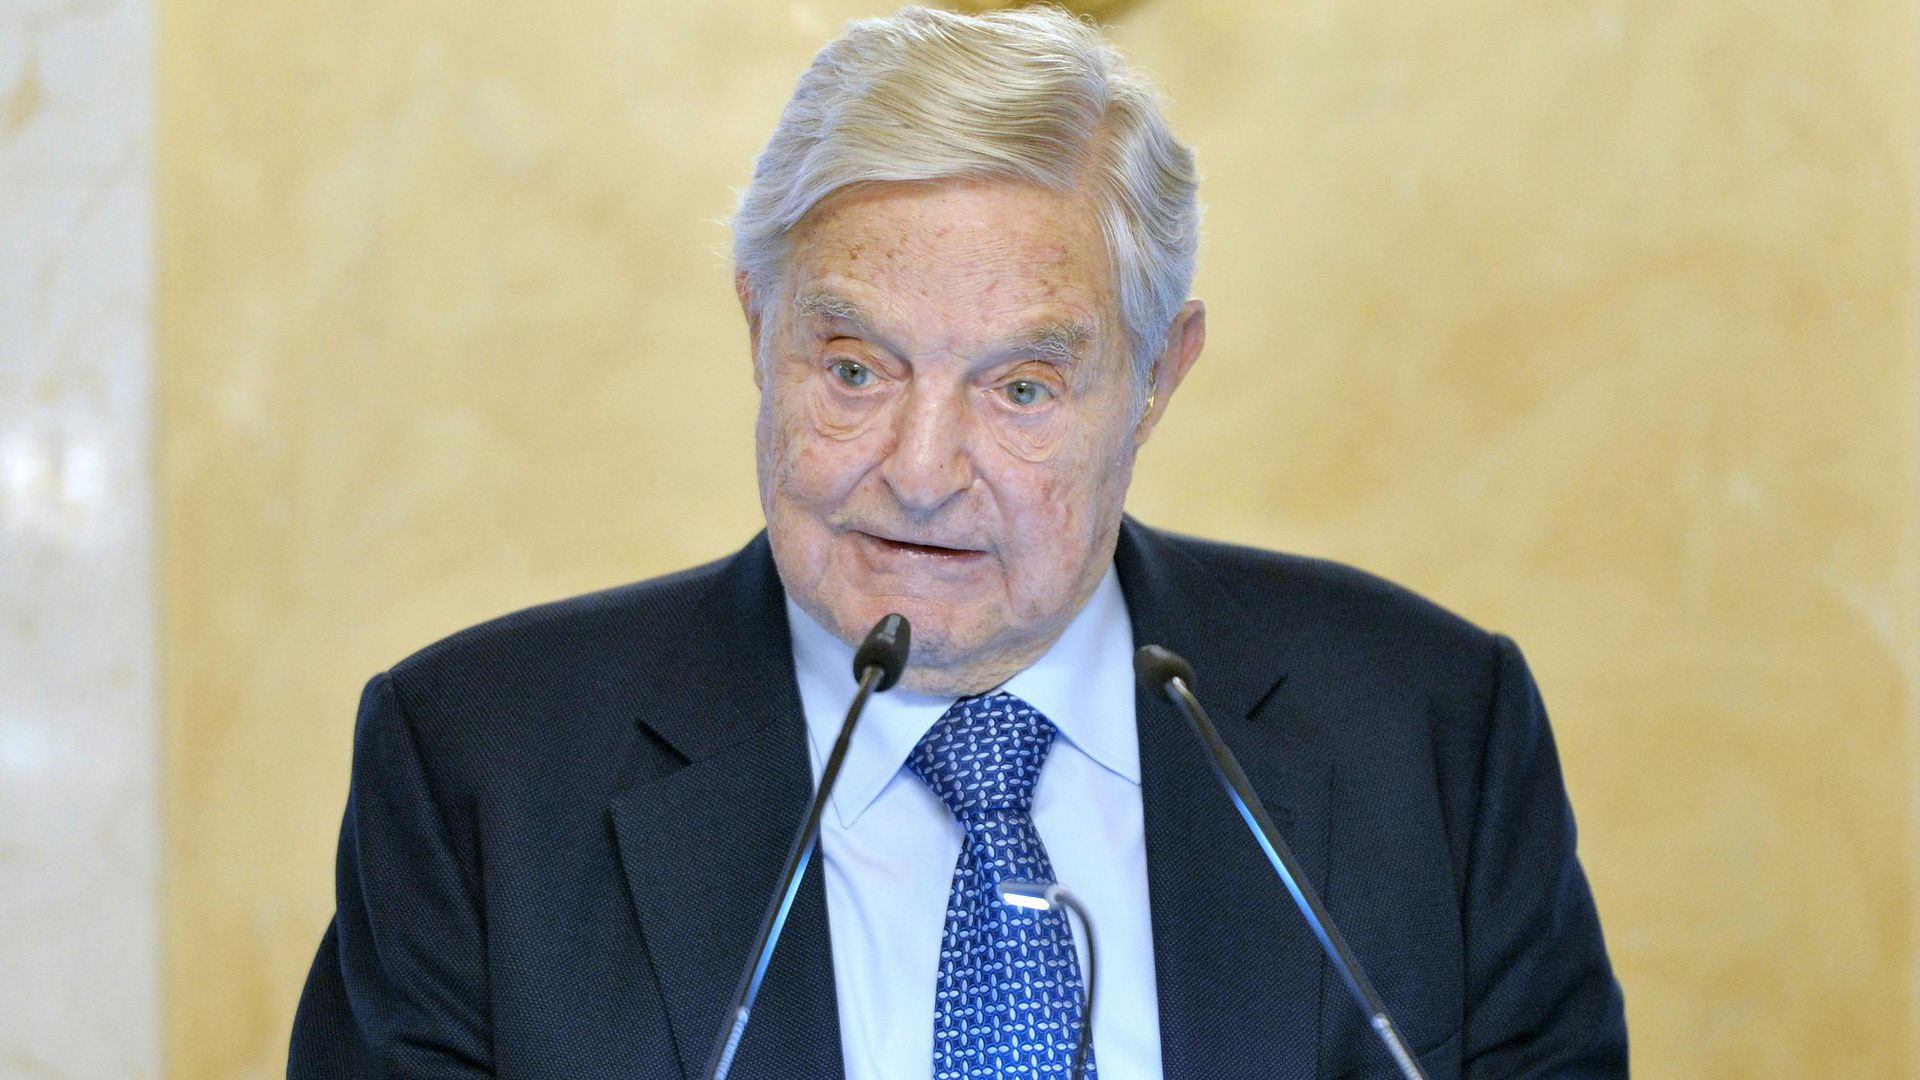 Billionaire and U.S. investor George Soros.